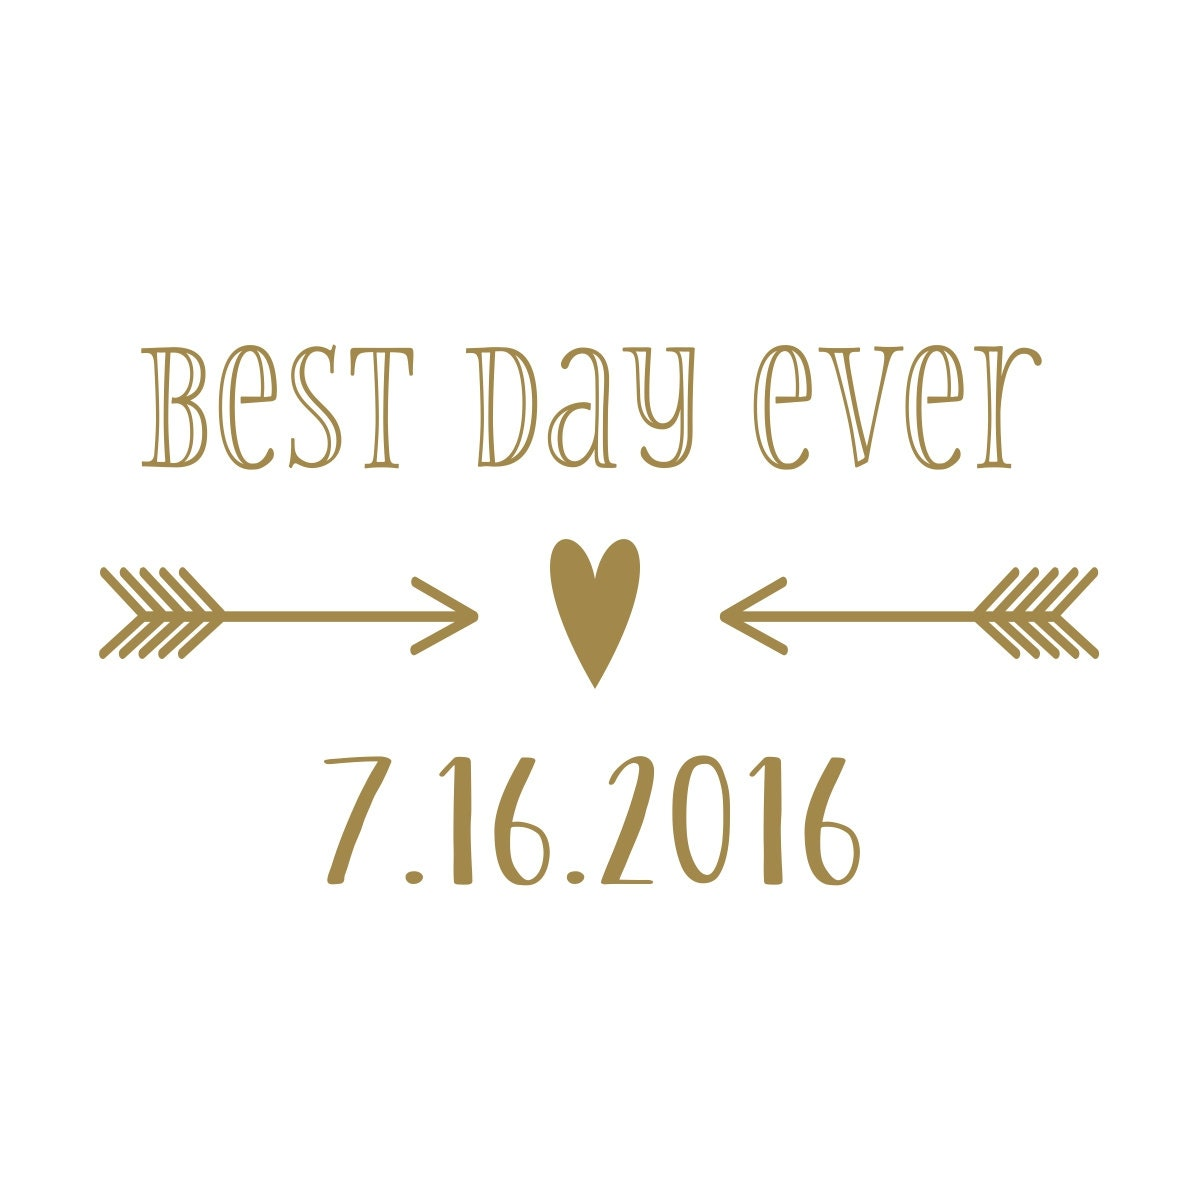 Best Time Of Day For Wedding: Custom Wedding Vinyl Decal Set For Cornhole